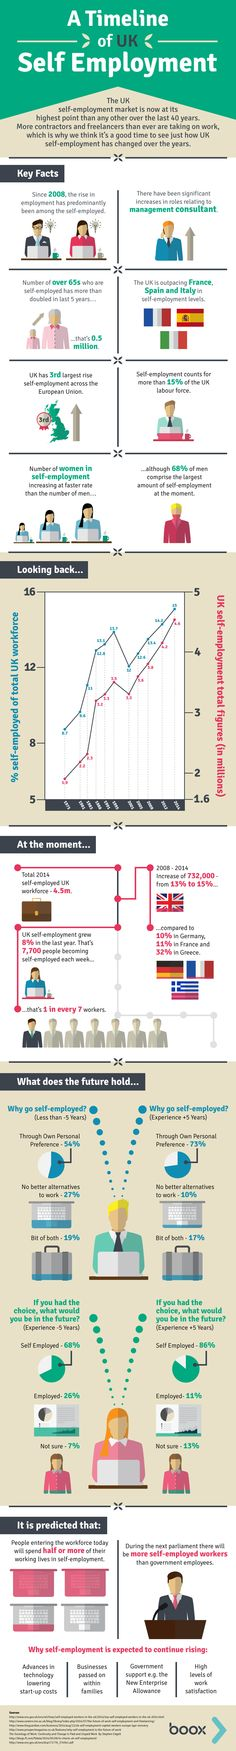 A timeline of the changes in the UK's self-employed workforce